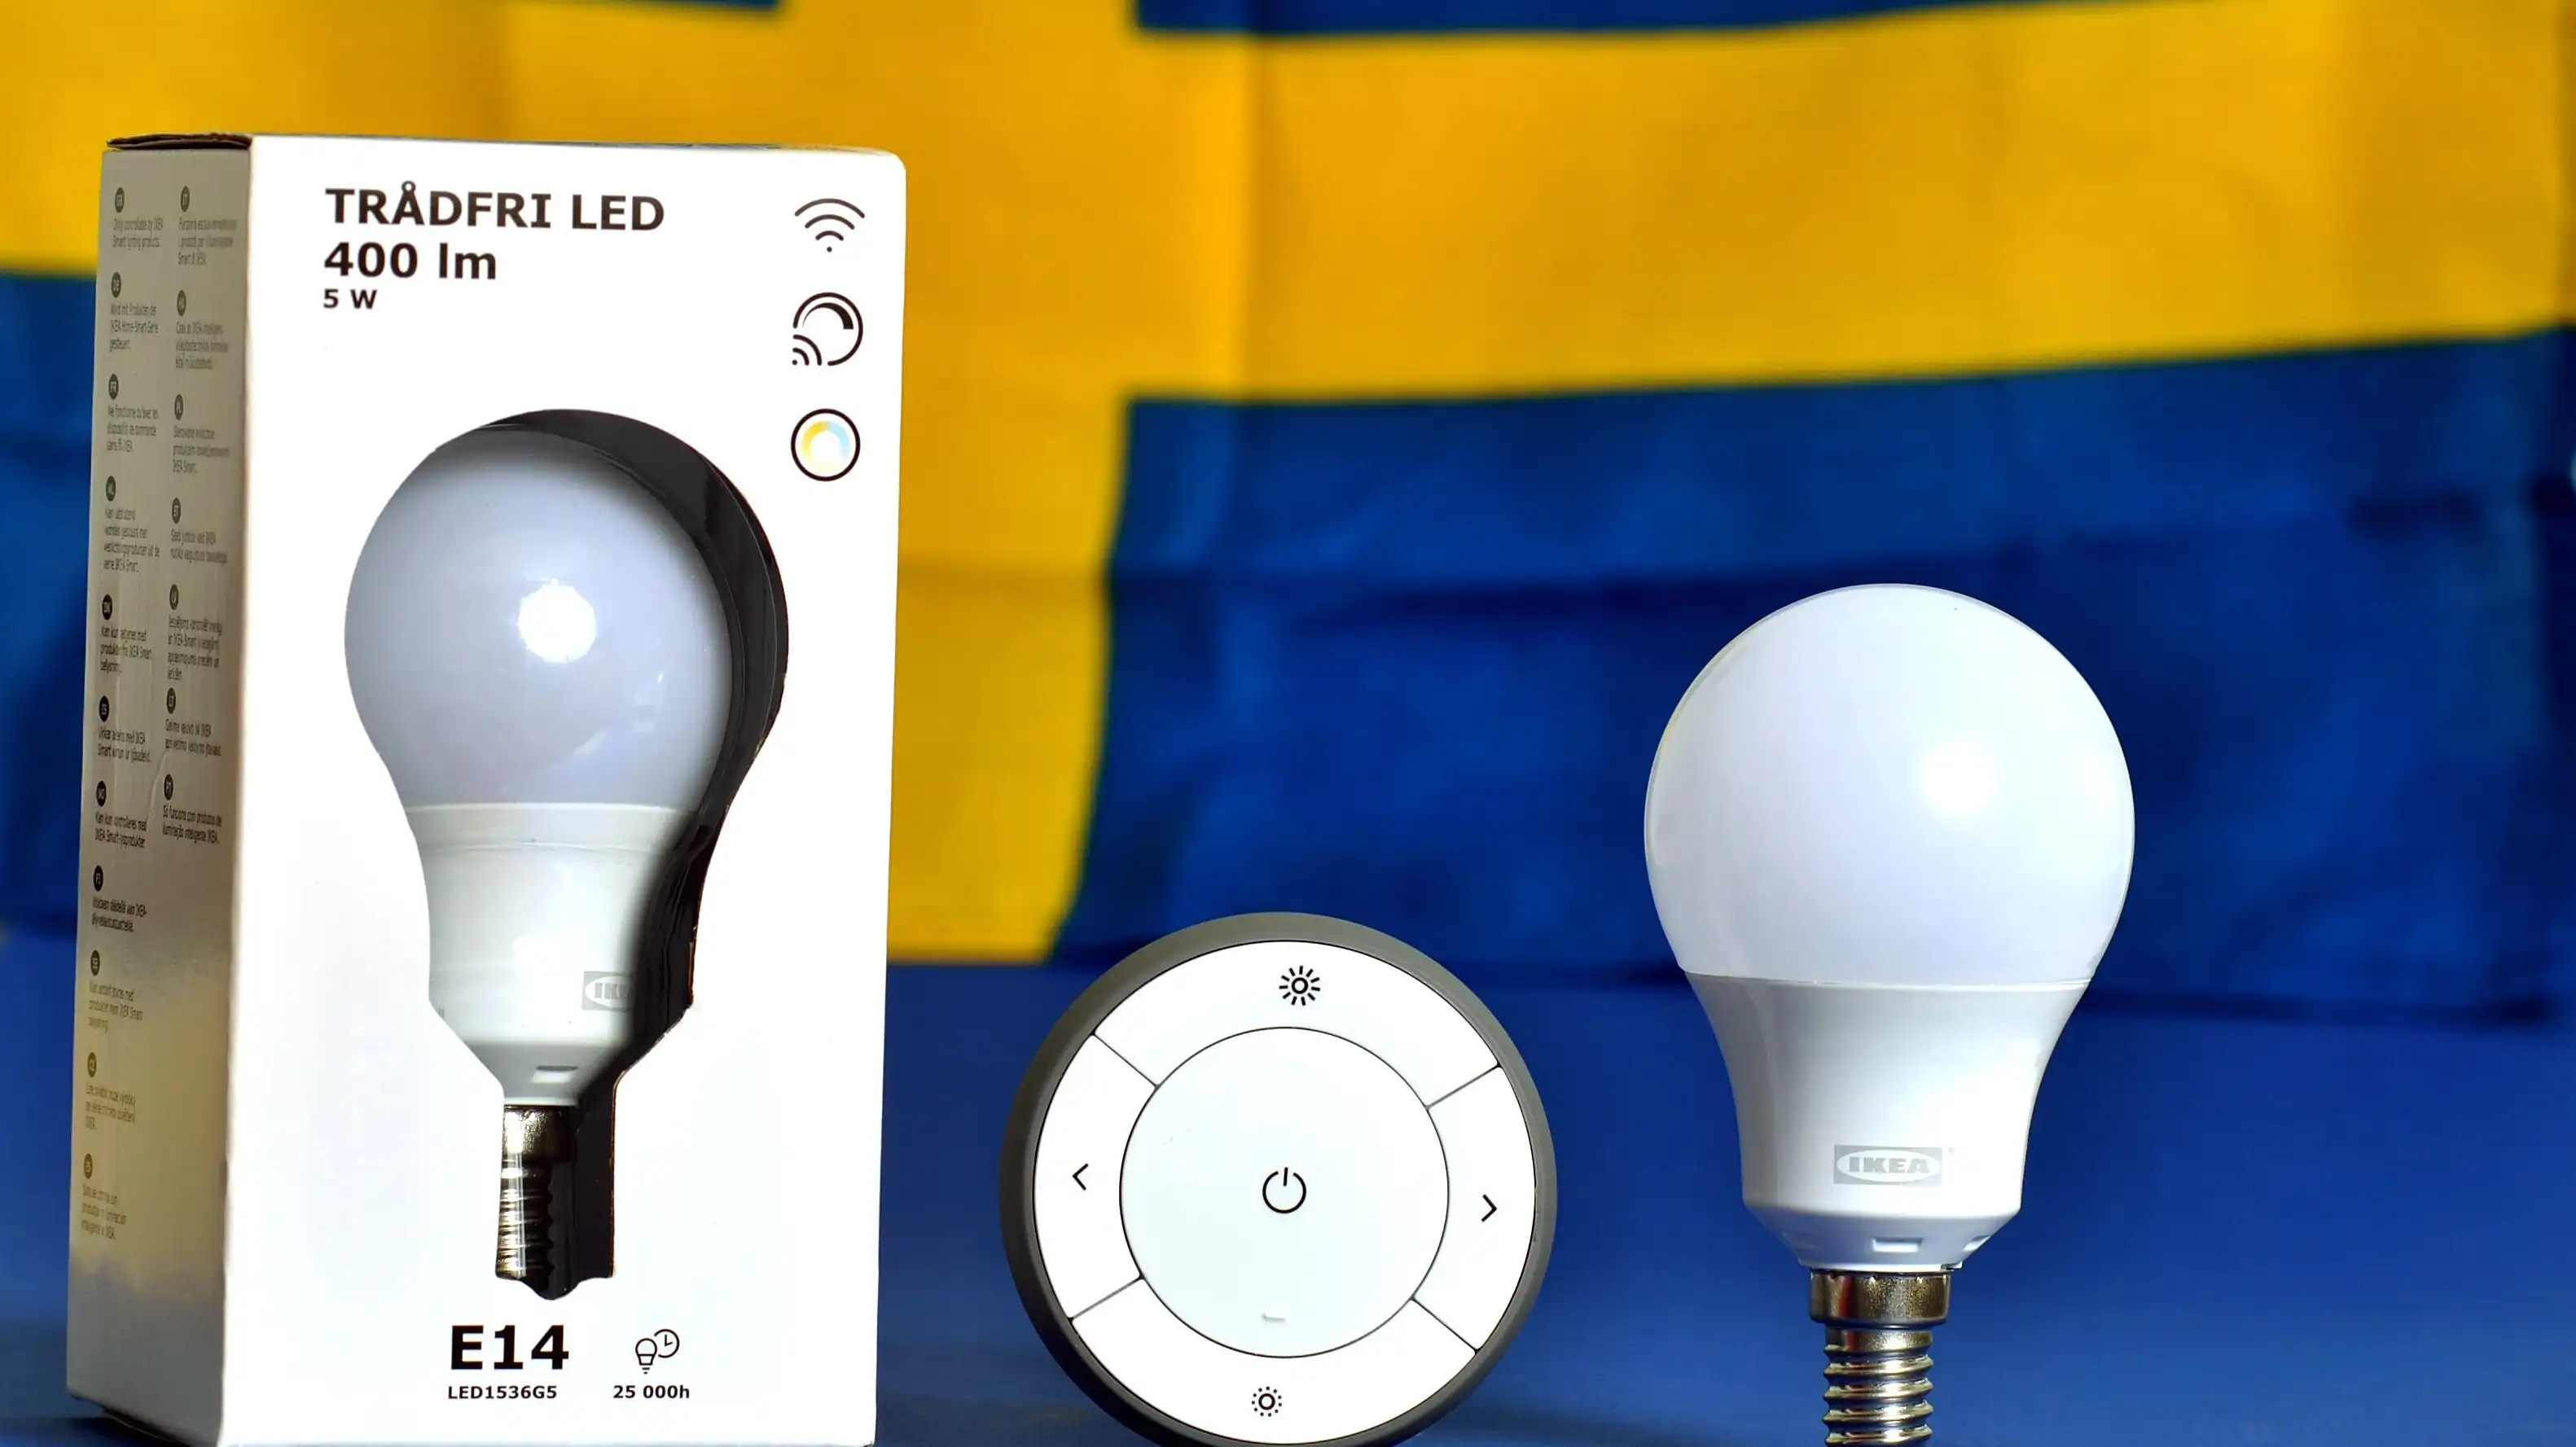 Led Lampen E27 10 Watt Das Steckt In Ikea Trådfri Make